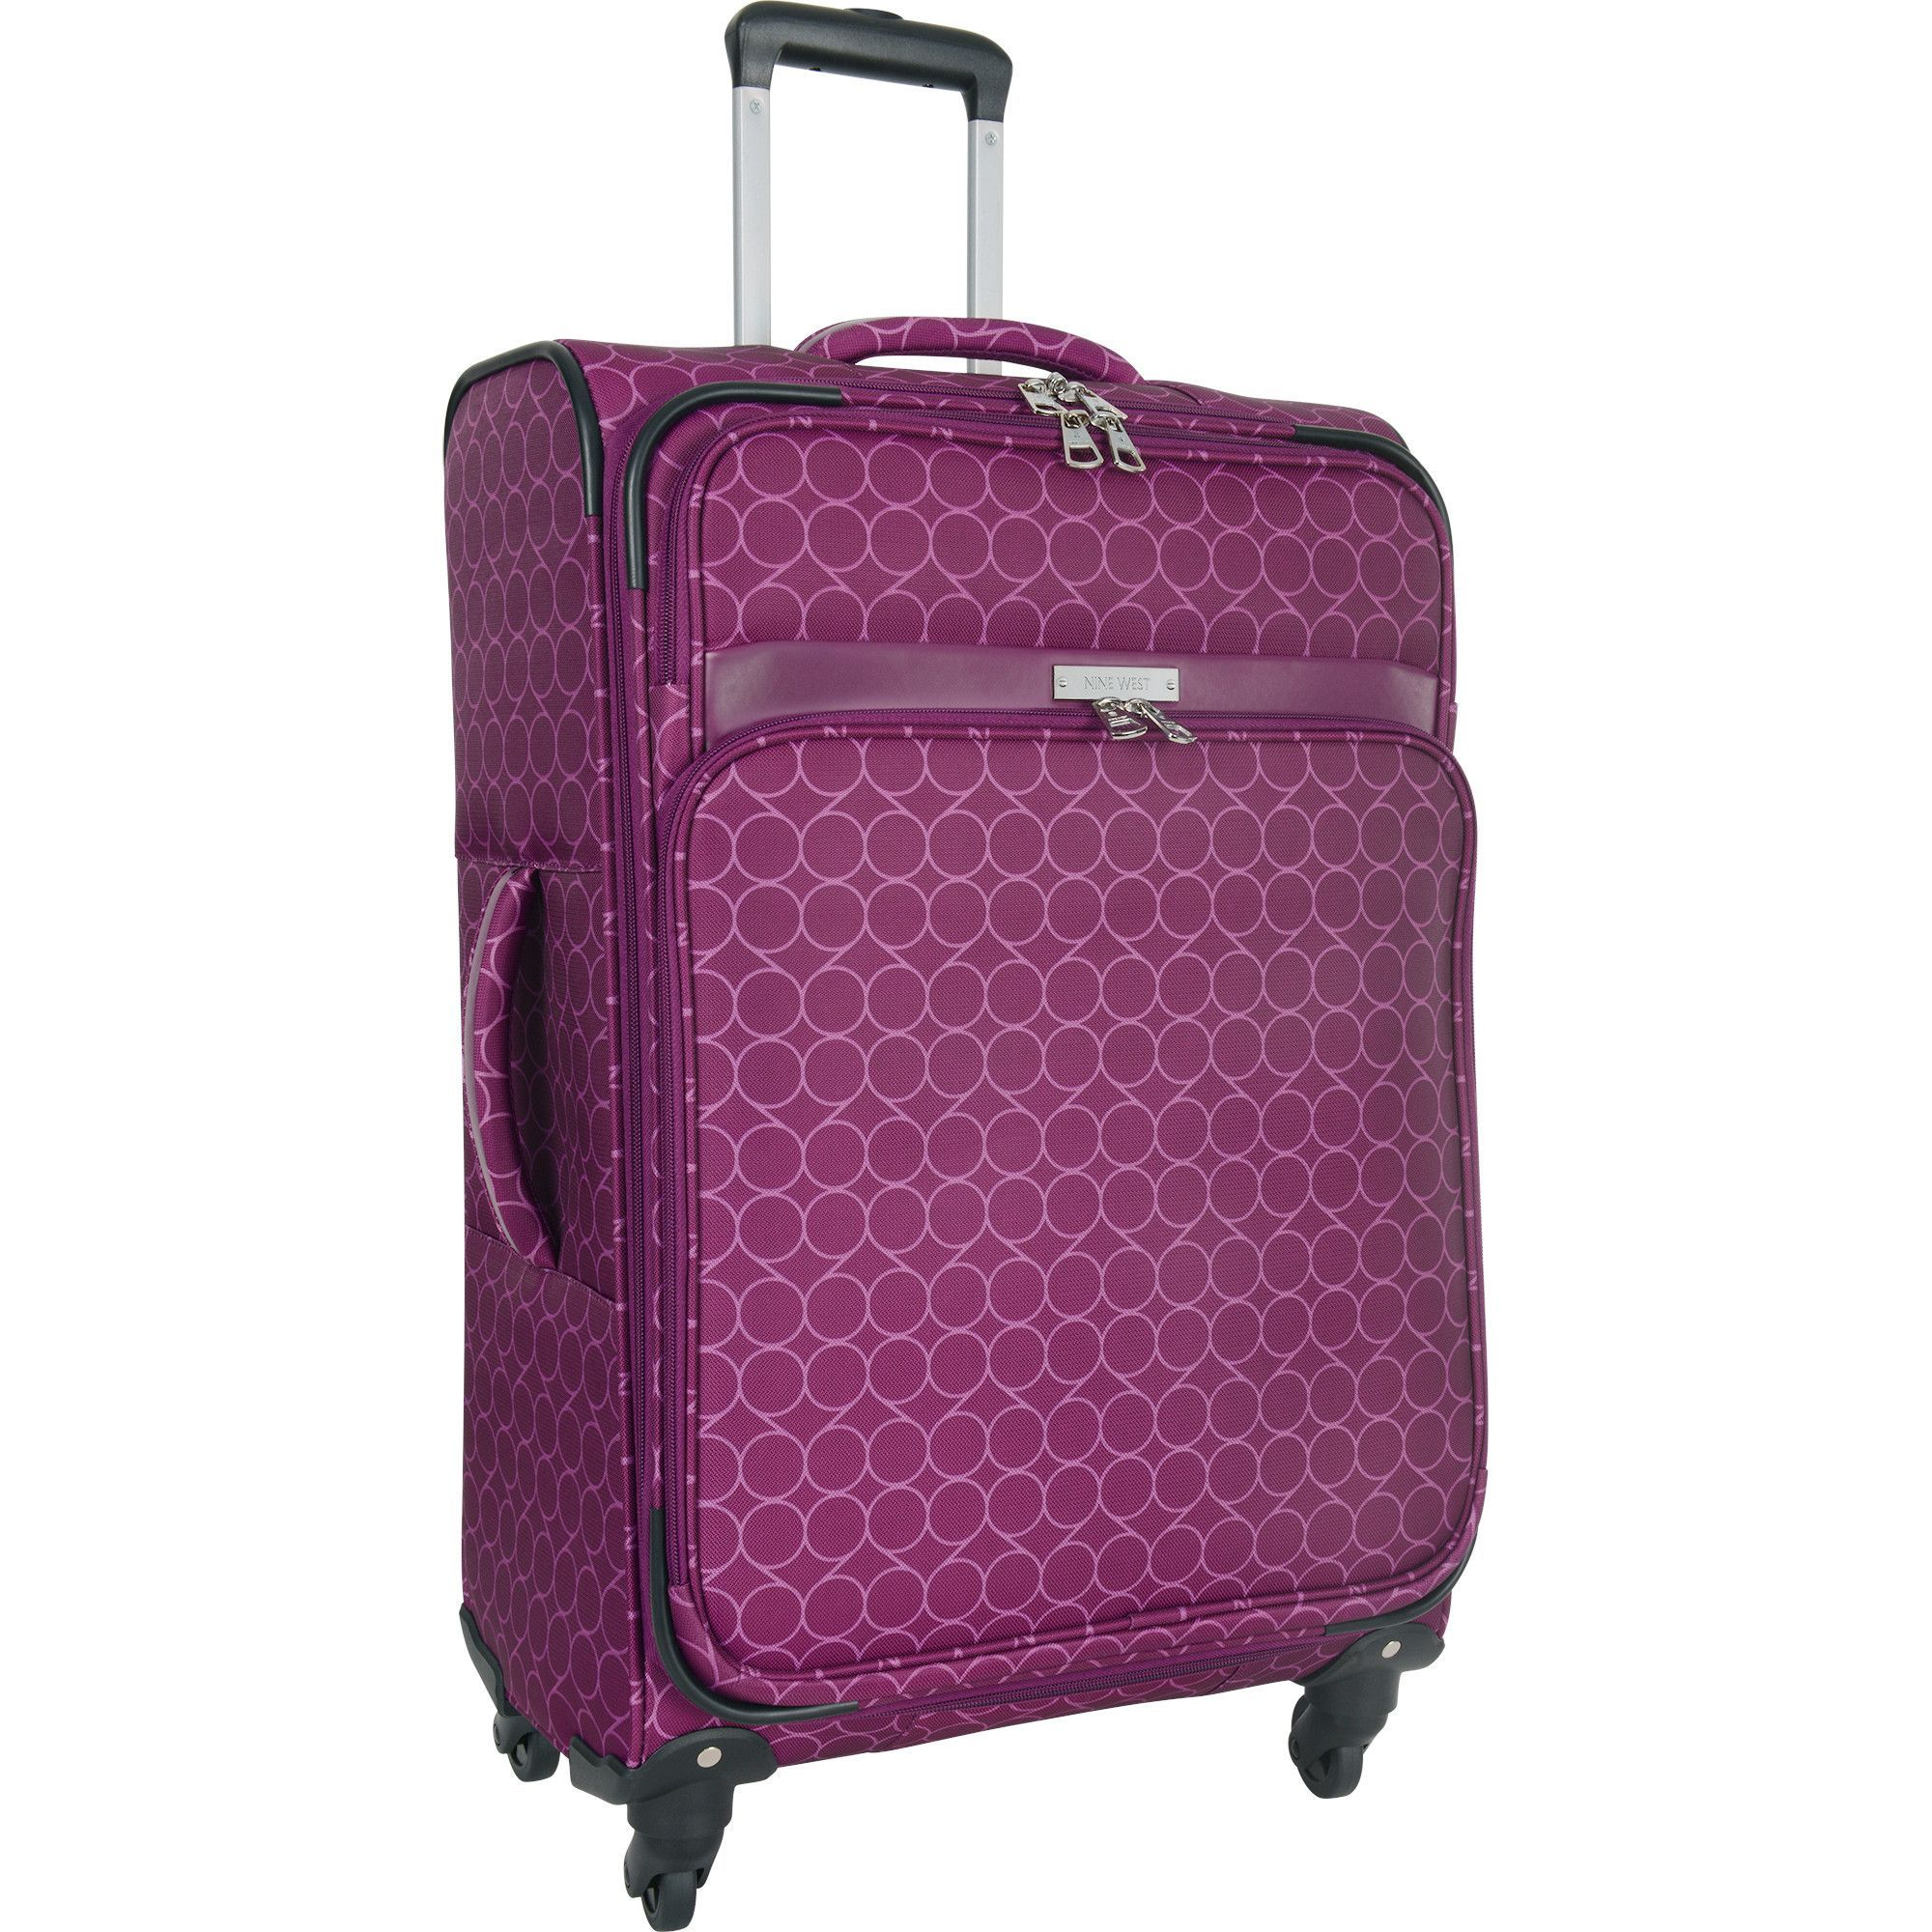 Nine West Brynn 24 Inch Expandable Spinner Suitcase